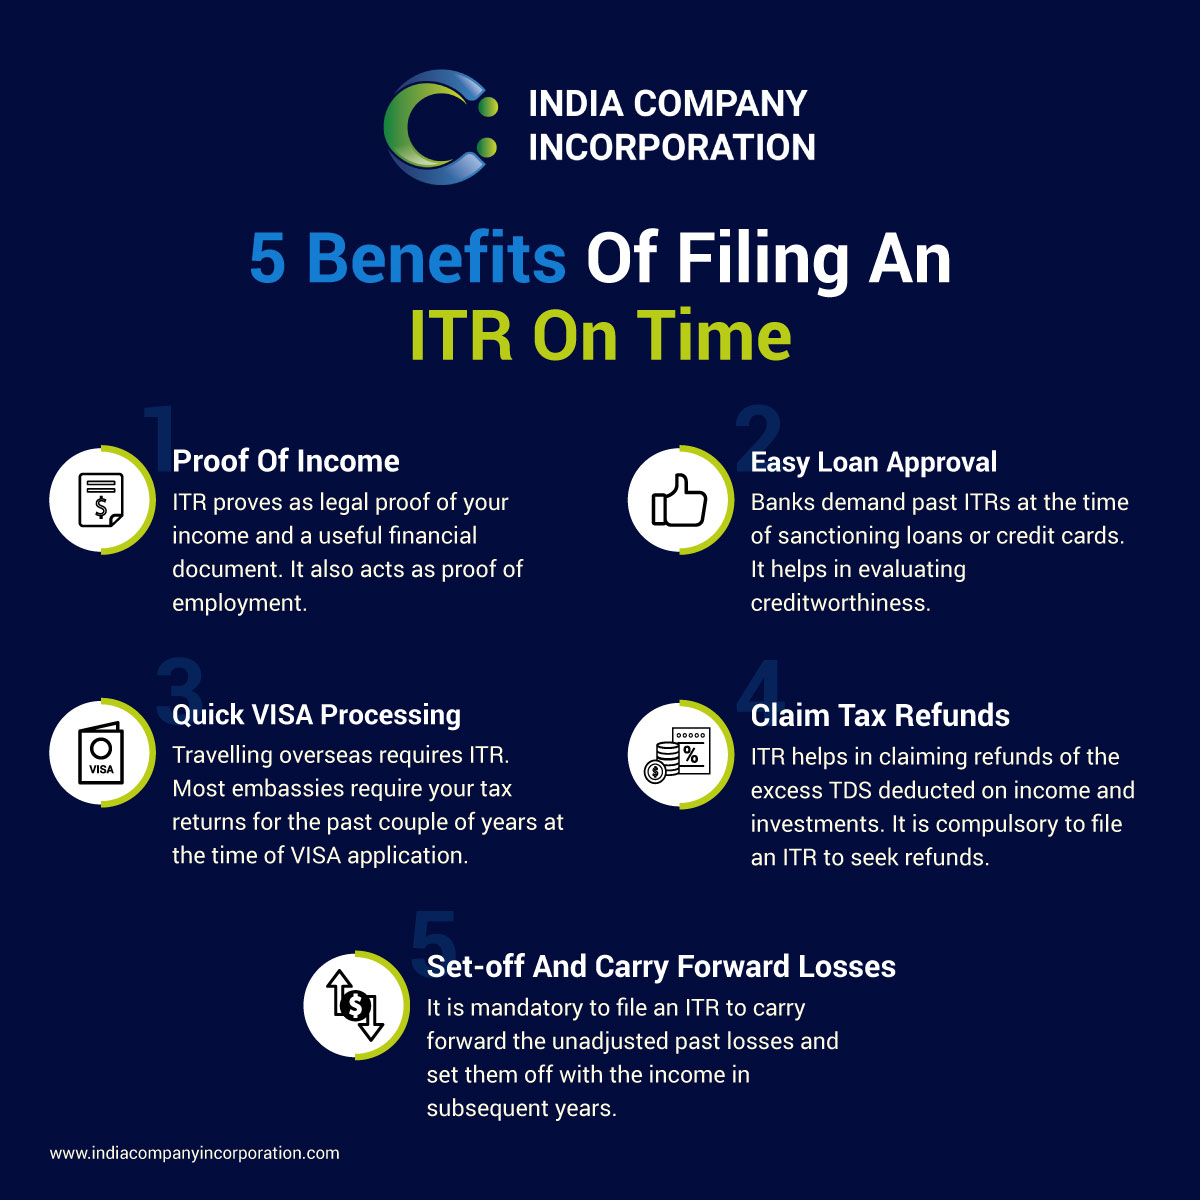 5 Benefits Of Filing ITR On Time